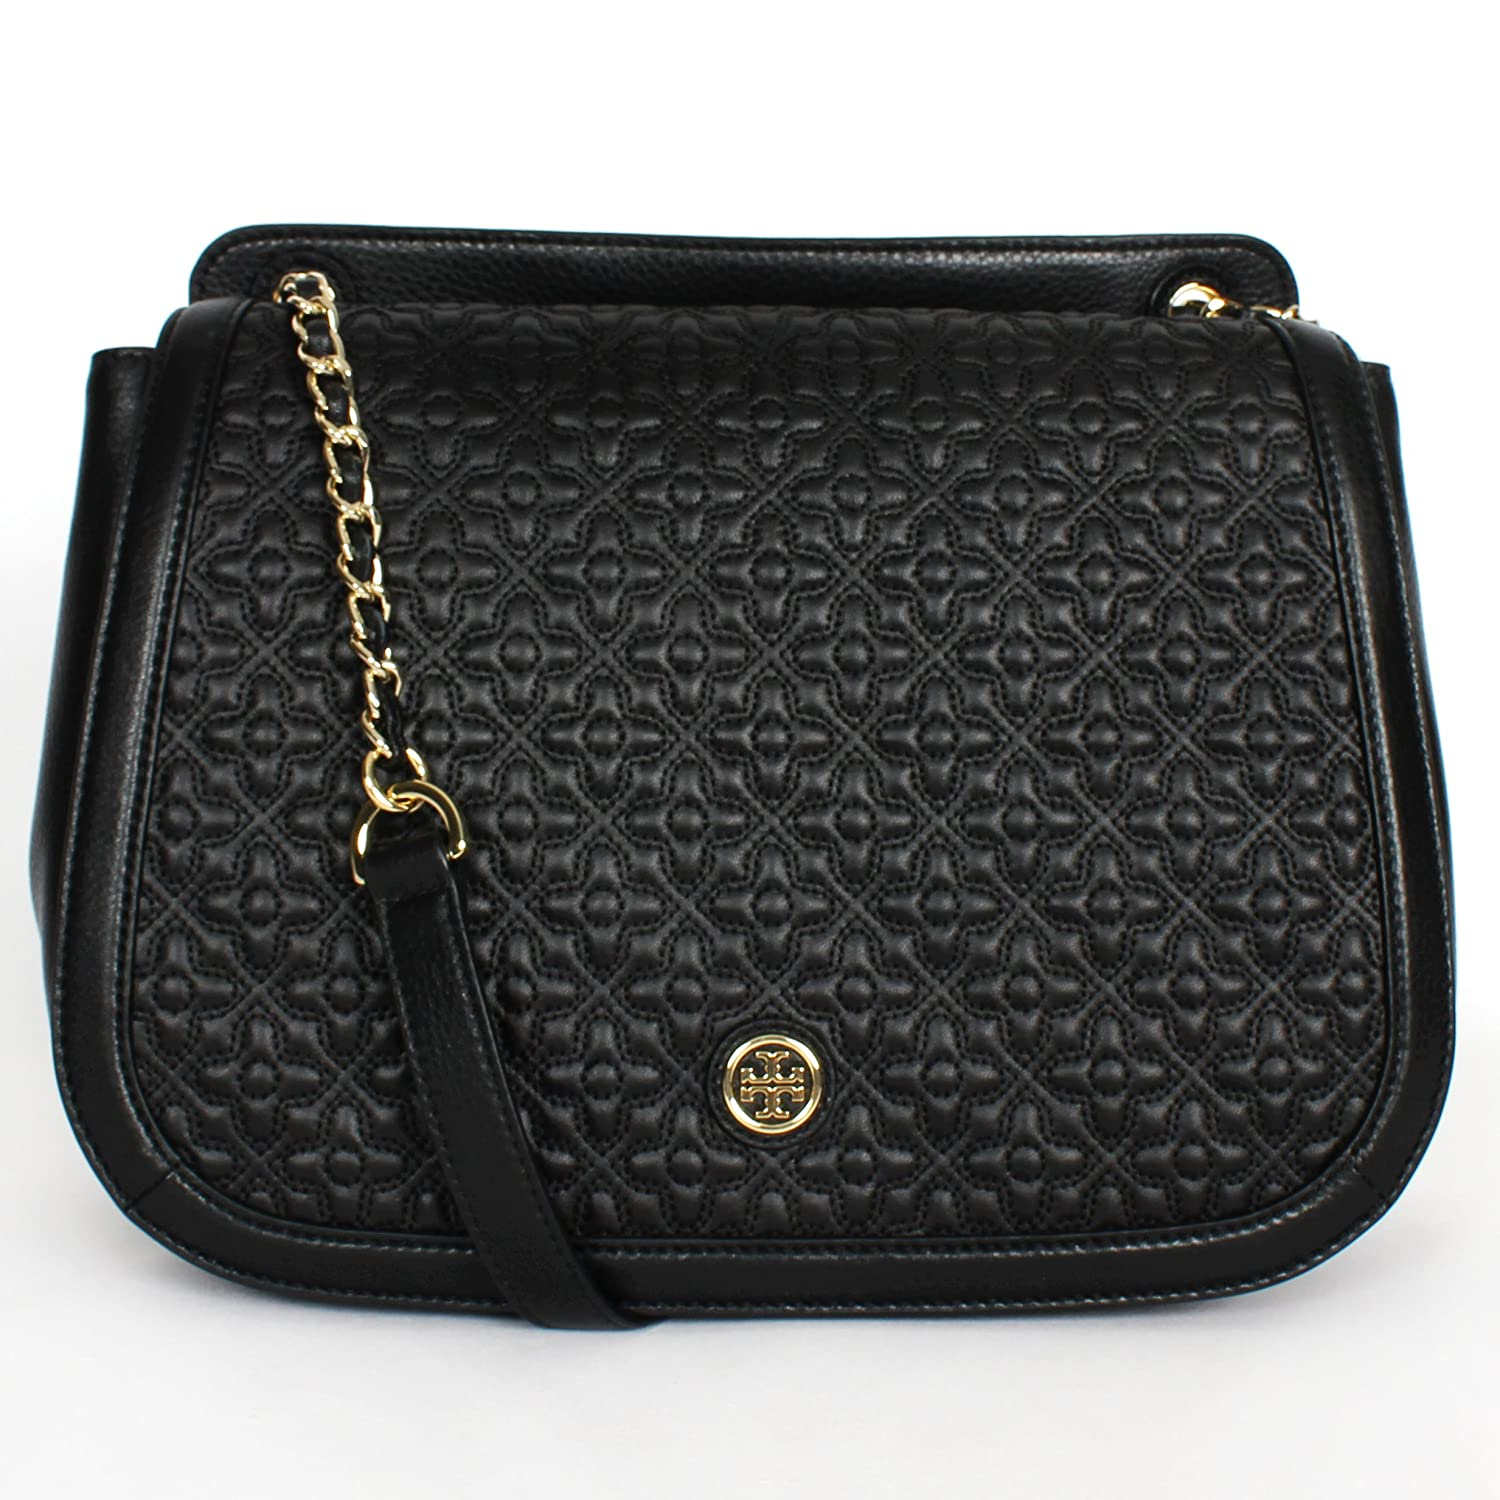 shoulder quilted luxury crossbody quilt black golden finger quality leather pu fashion bags handbags chain bag high brand item